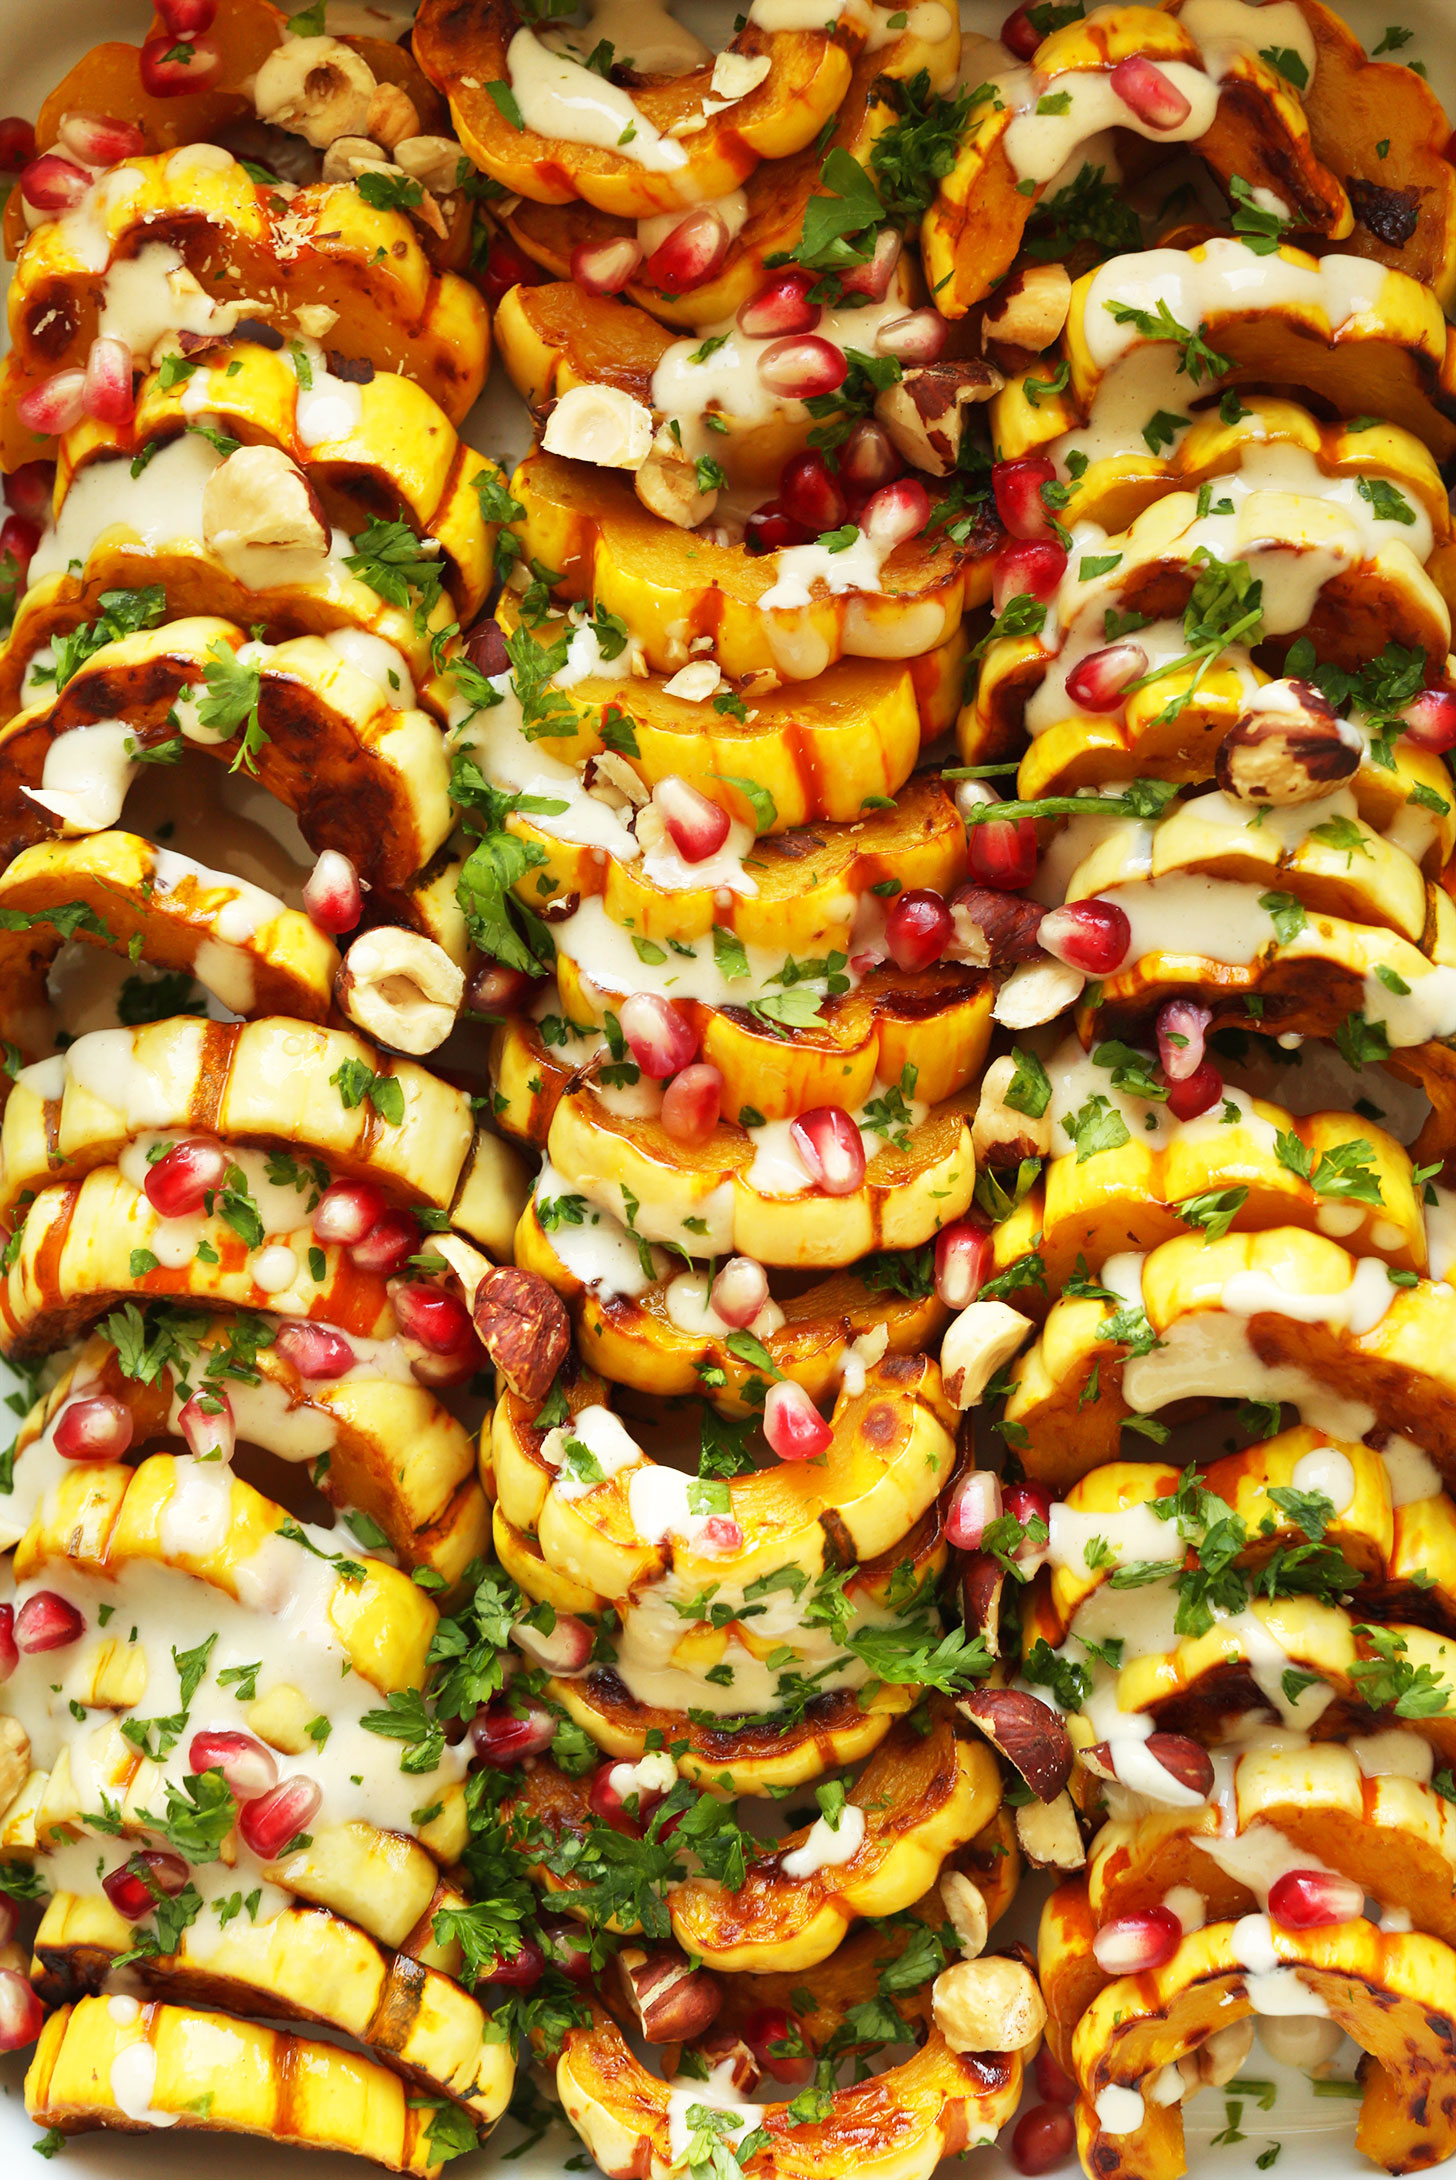 Close up shot of our beautiful and delicious gluten-free vegan Delicata Squash Bake